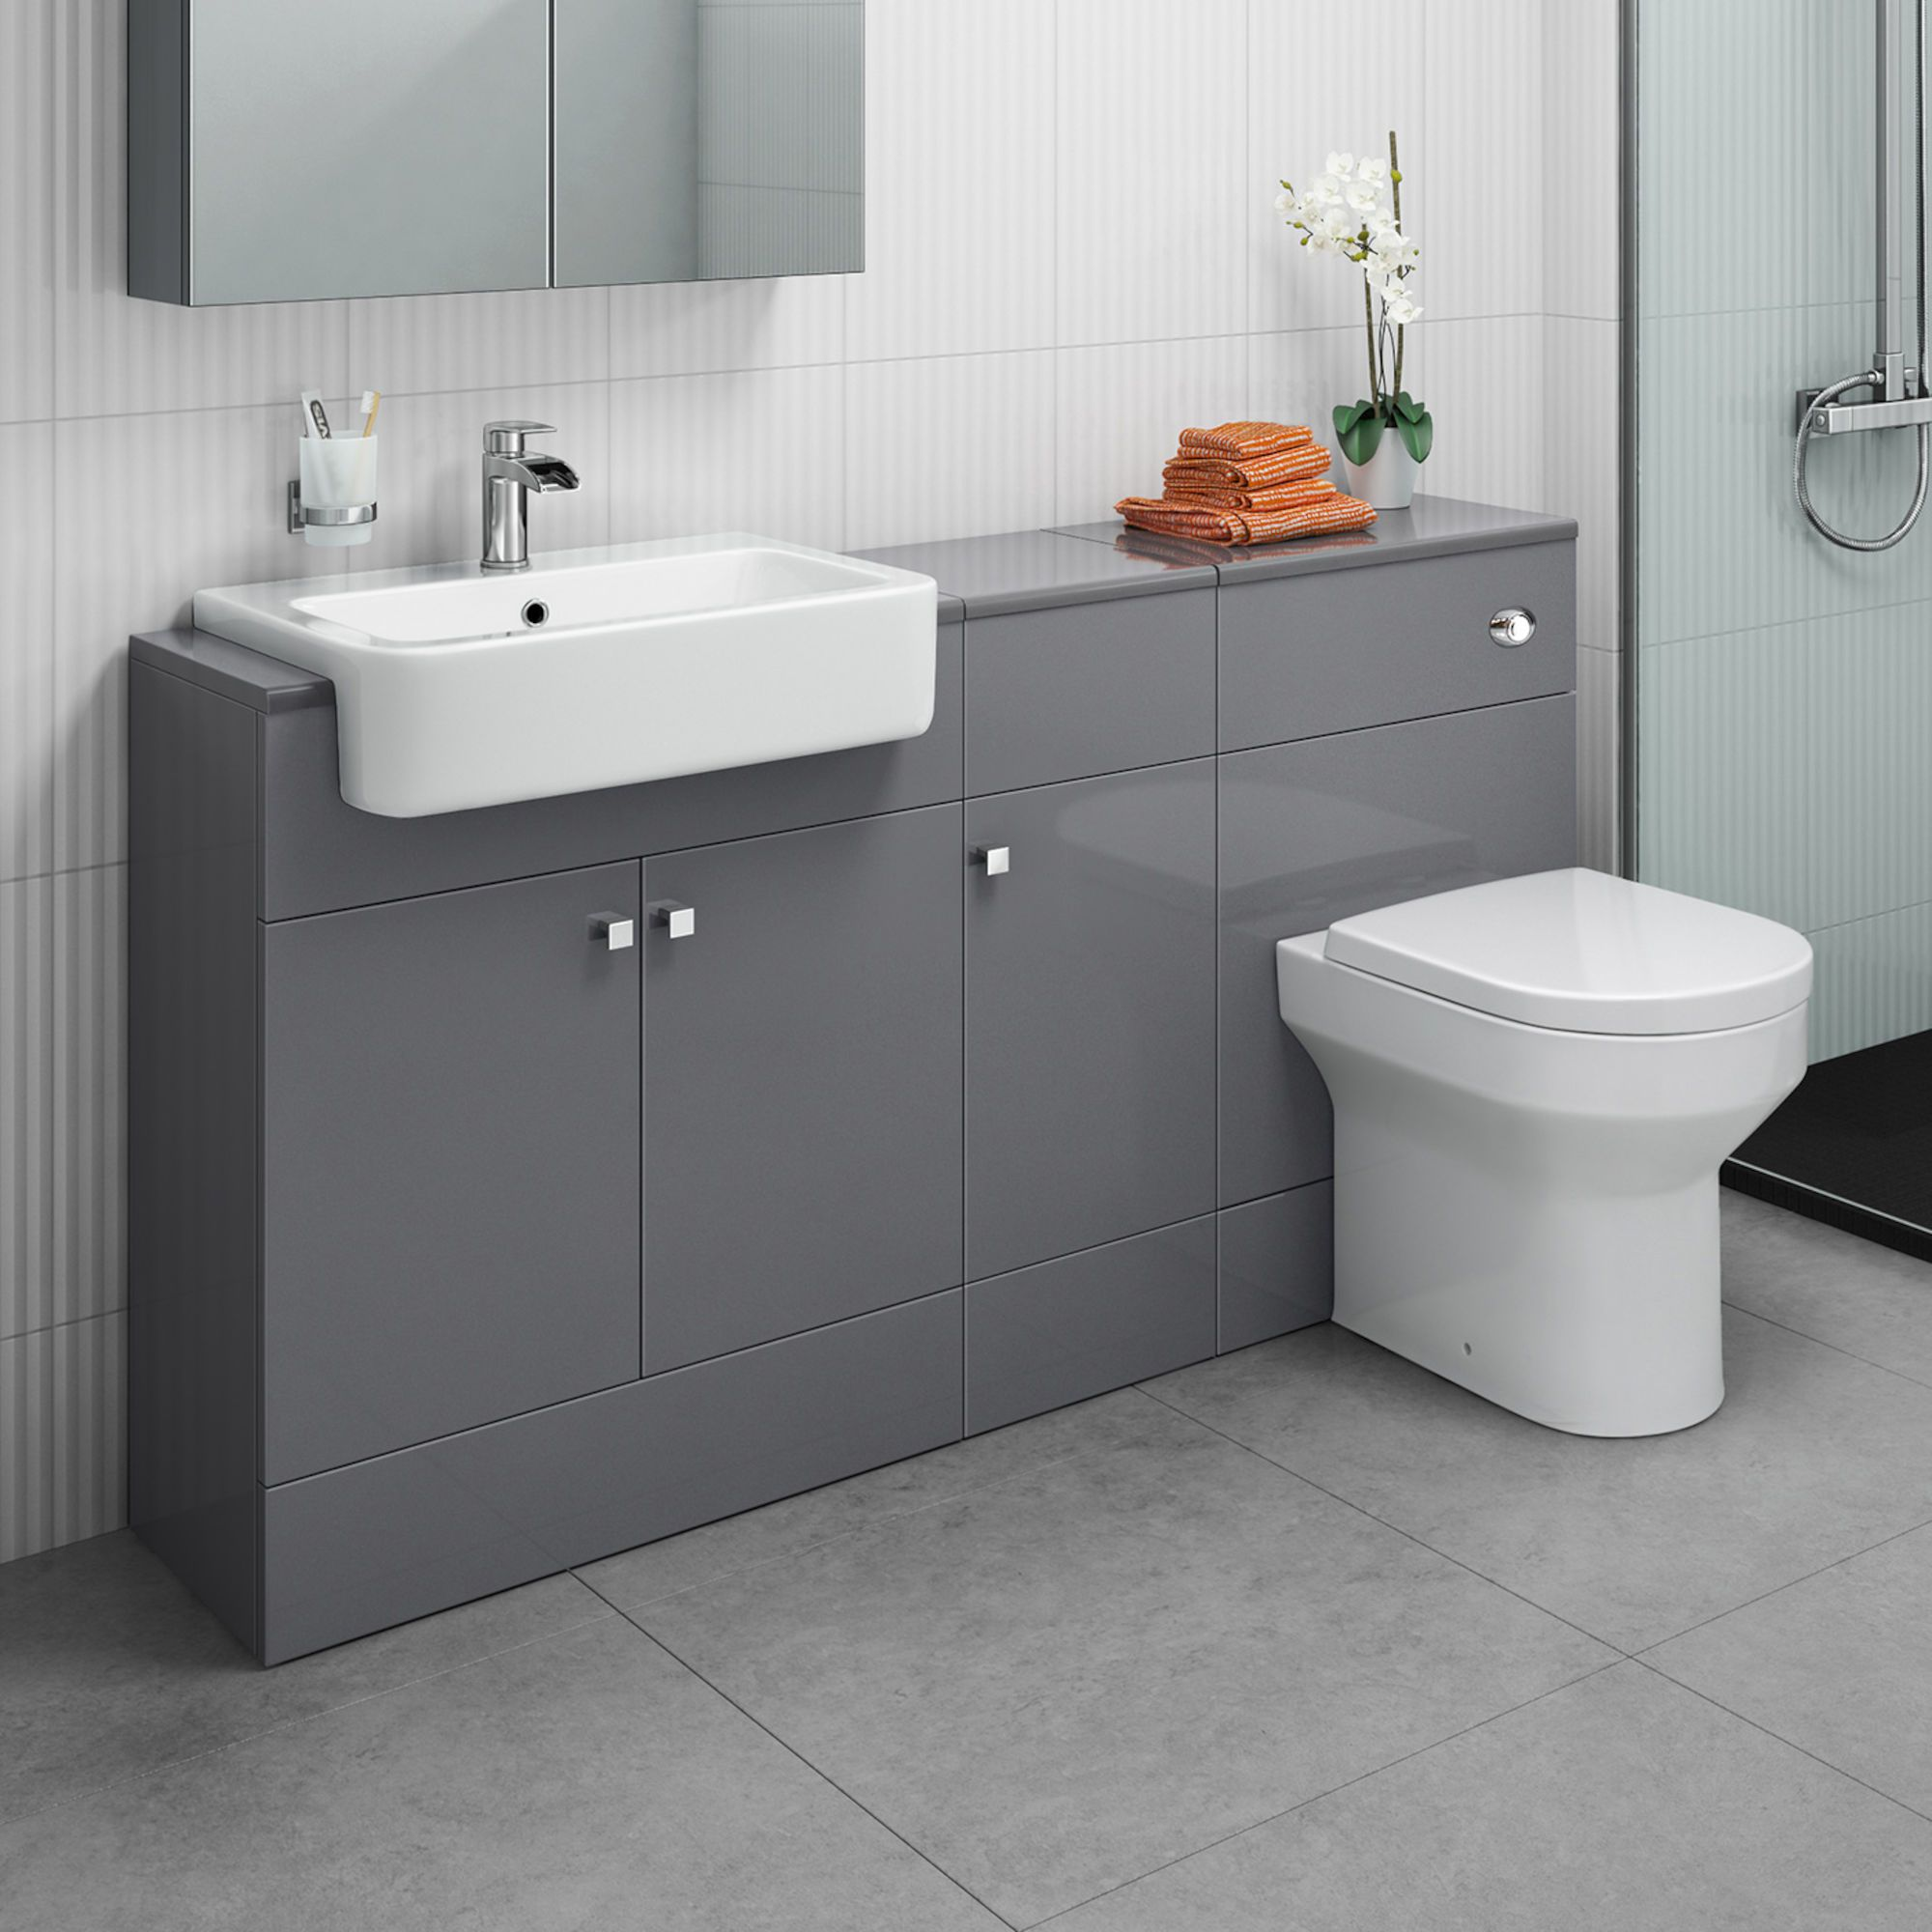 Swell 1500Mm Harper Gloss Grey Combined Vanity Unit Cesar Iii Evergreenethics Interior Chair Design Evergreenethicsorg